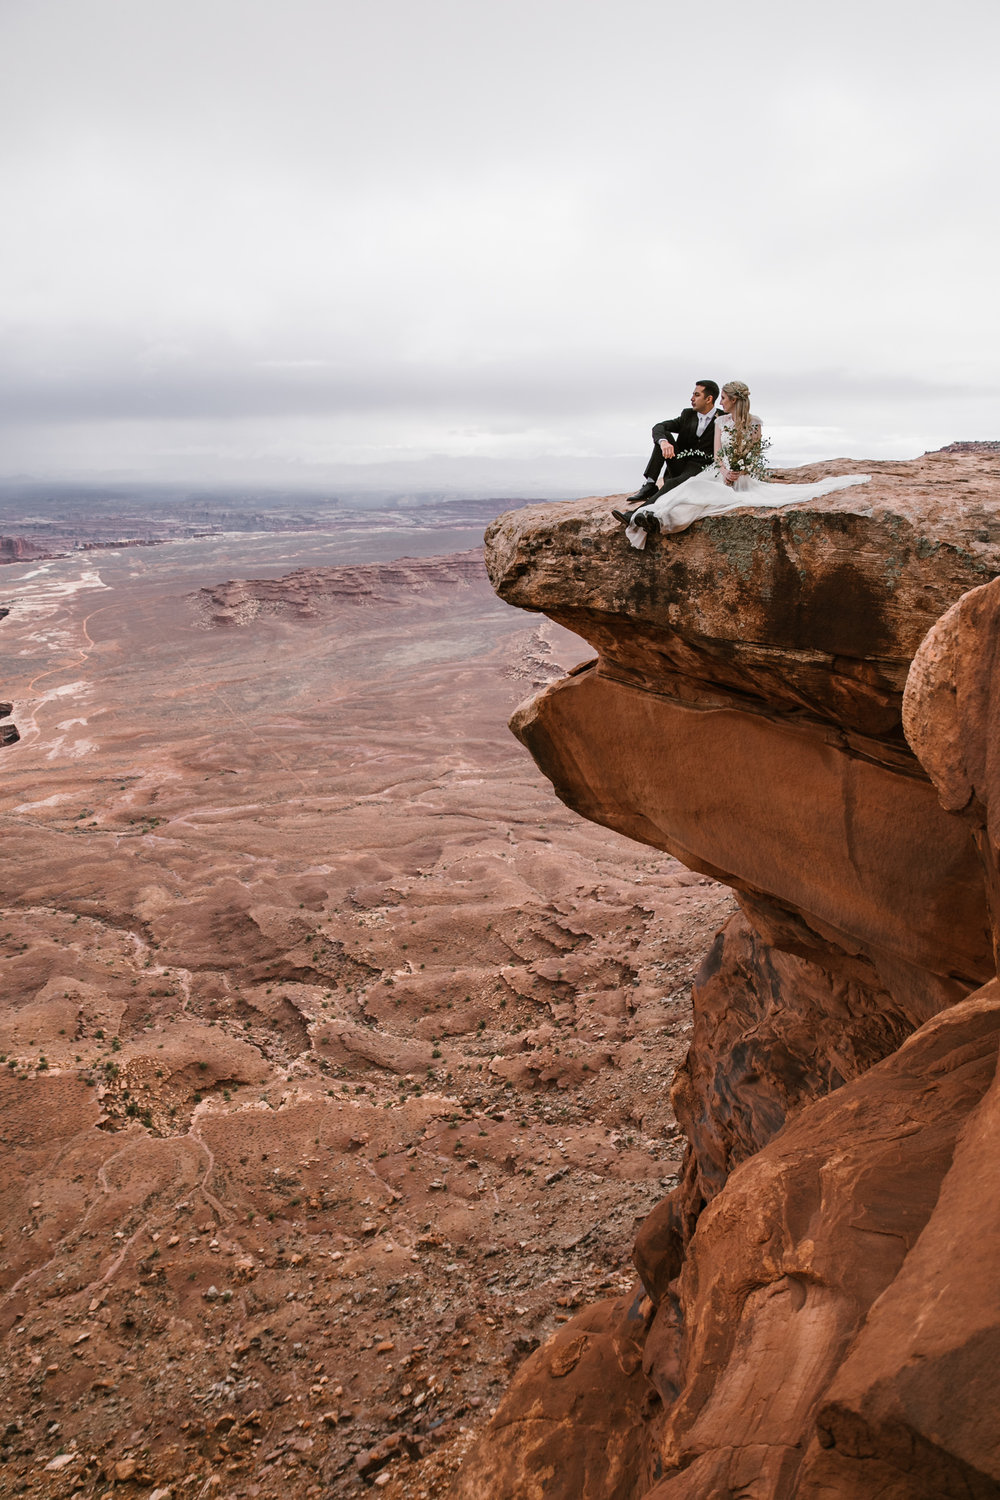 canyonlands national park elopement inspiration | moab utah wedding bridals | the hearnes adventure photography